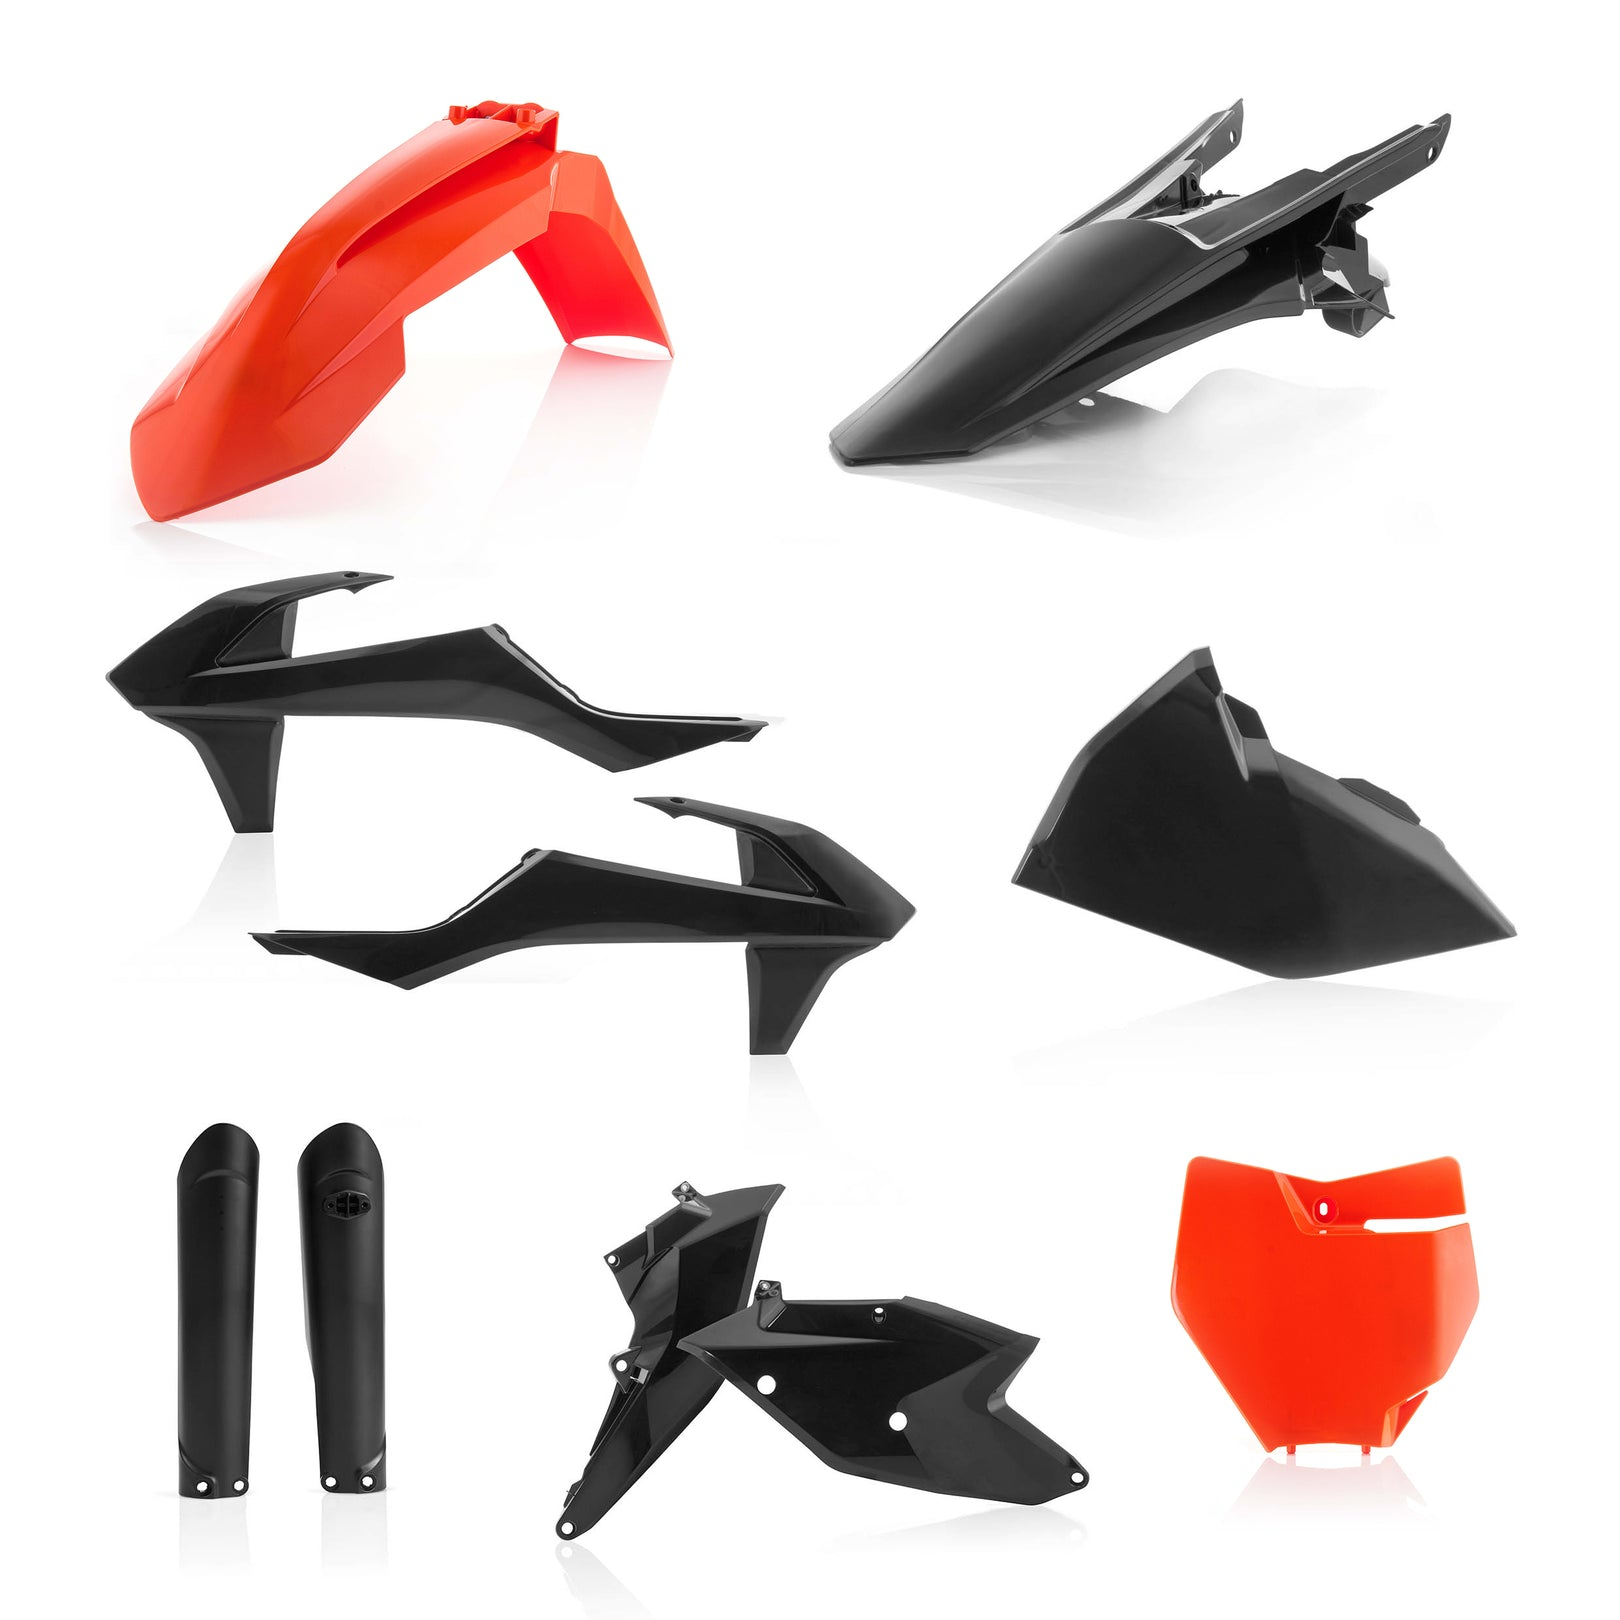 KTM FULL PLASTIC KIT - Orange/Black - SX125/150, SX-F250/350/450, XC-F250/350/450: 16-18, SX250/XC: 17-18 - Acerbis